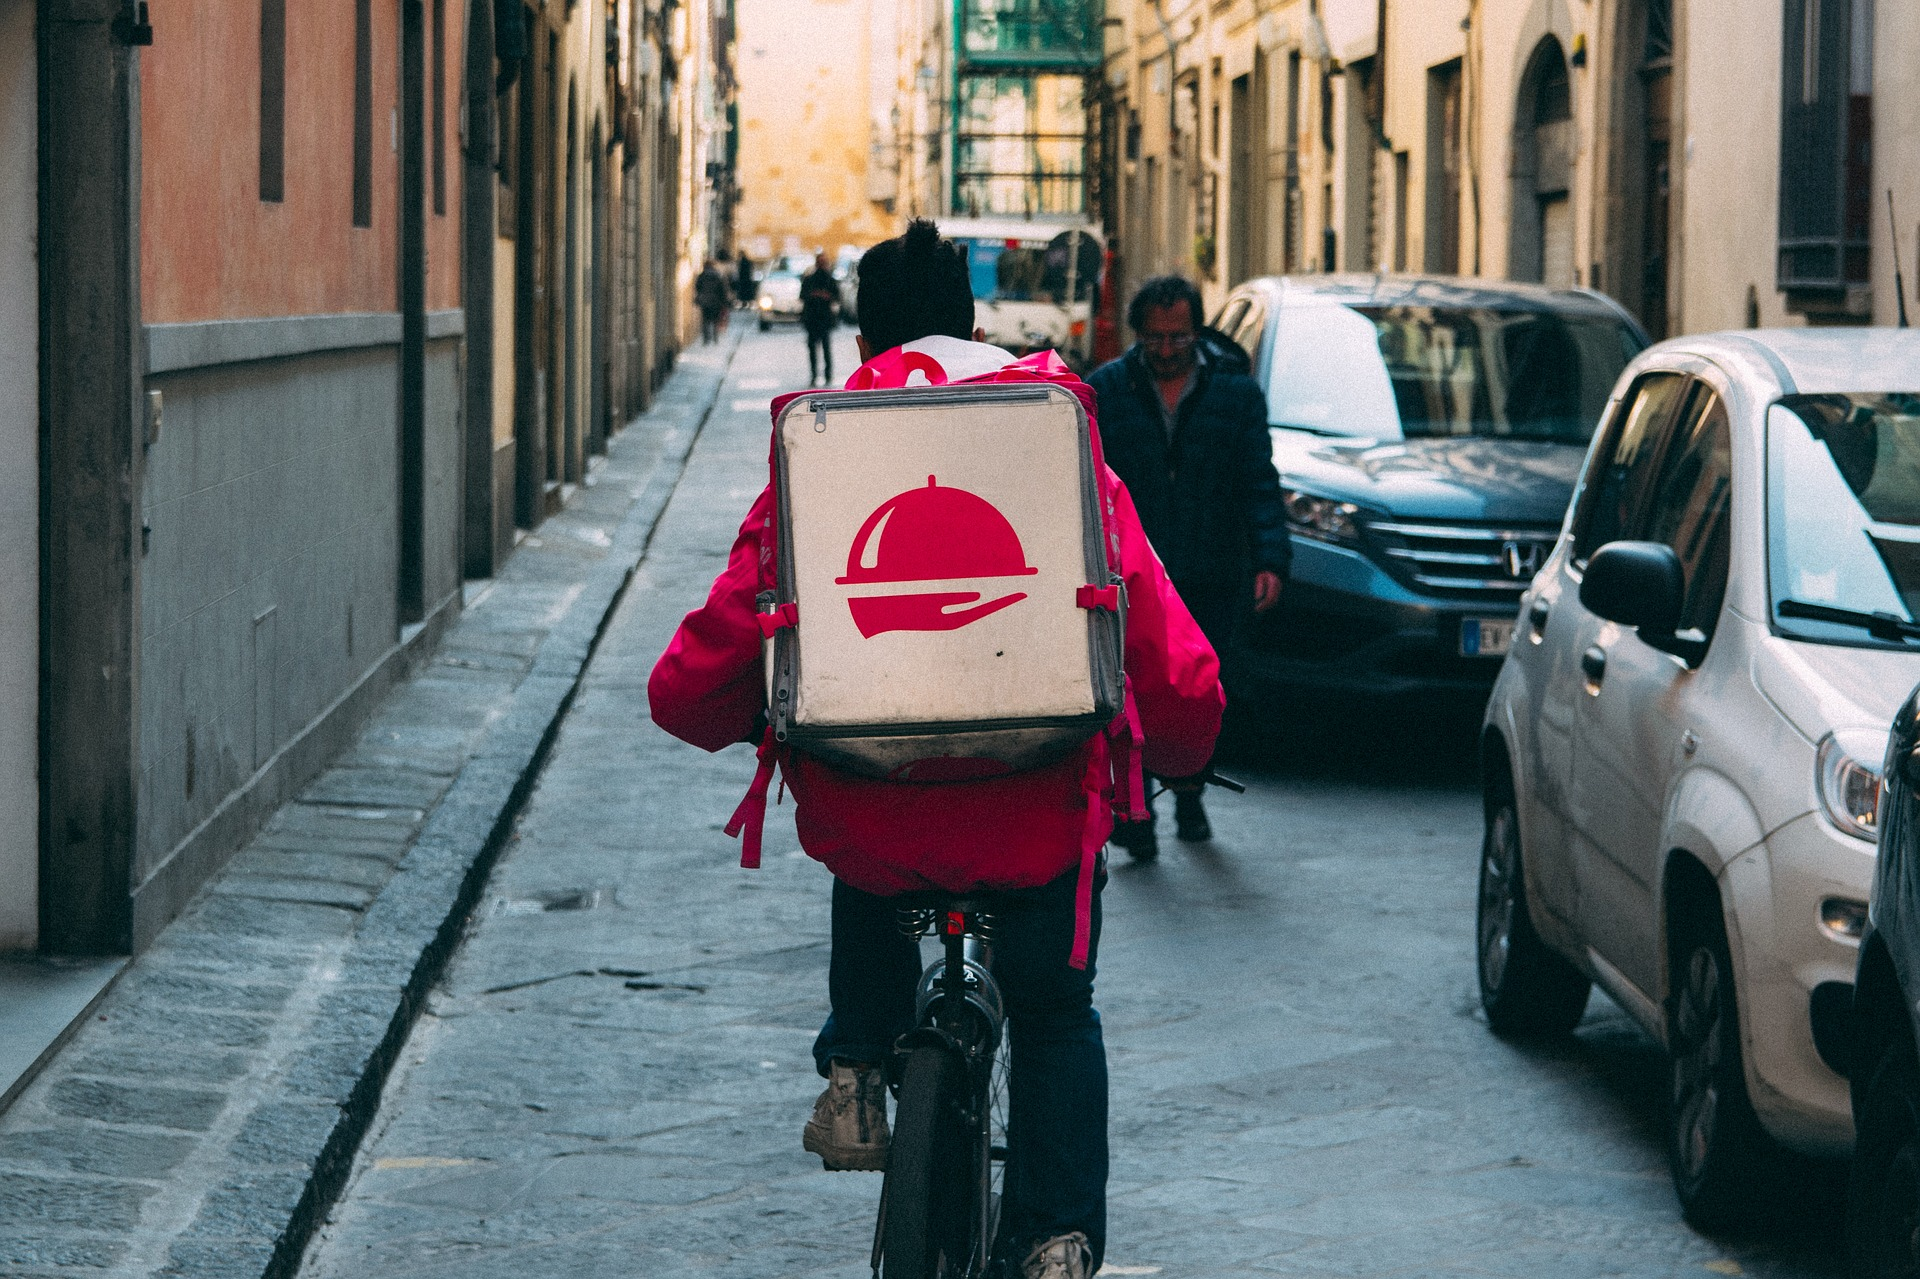 Budding Food Delivery Firms Slammed by Profitability Dilemmas